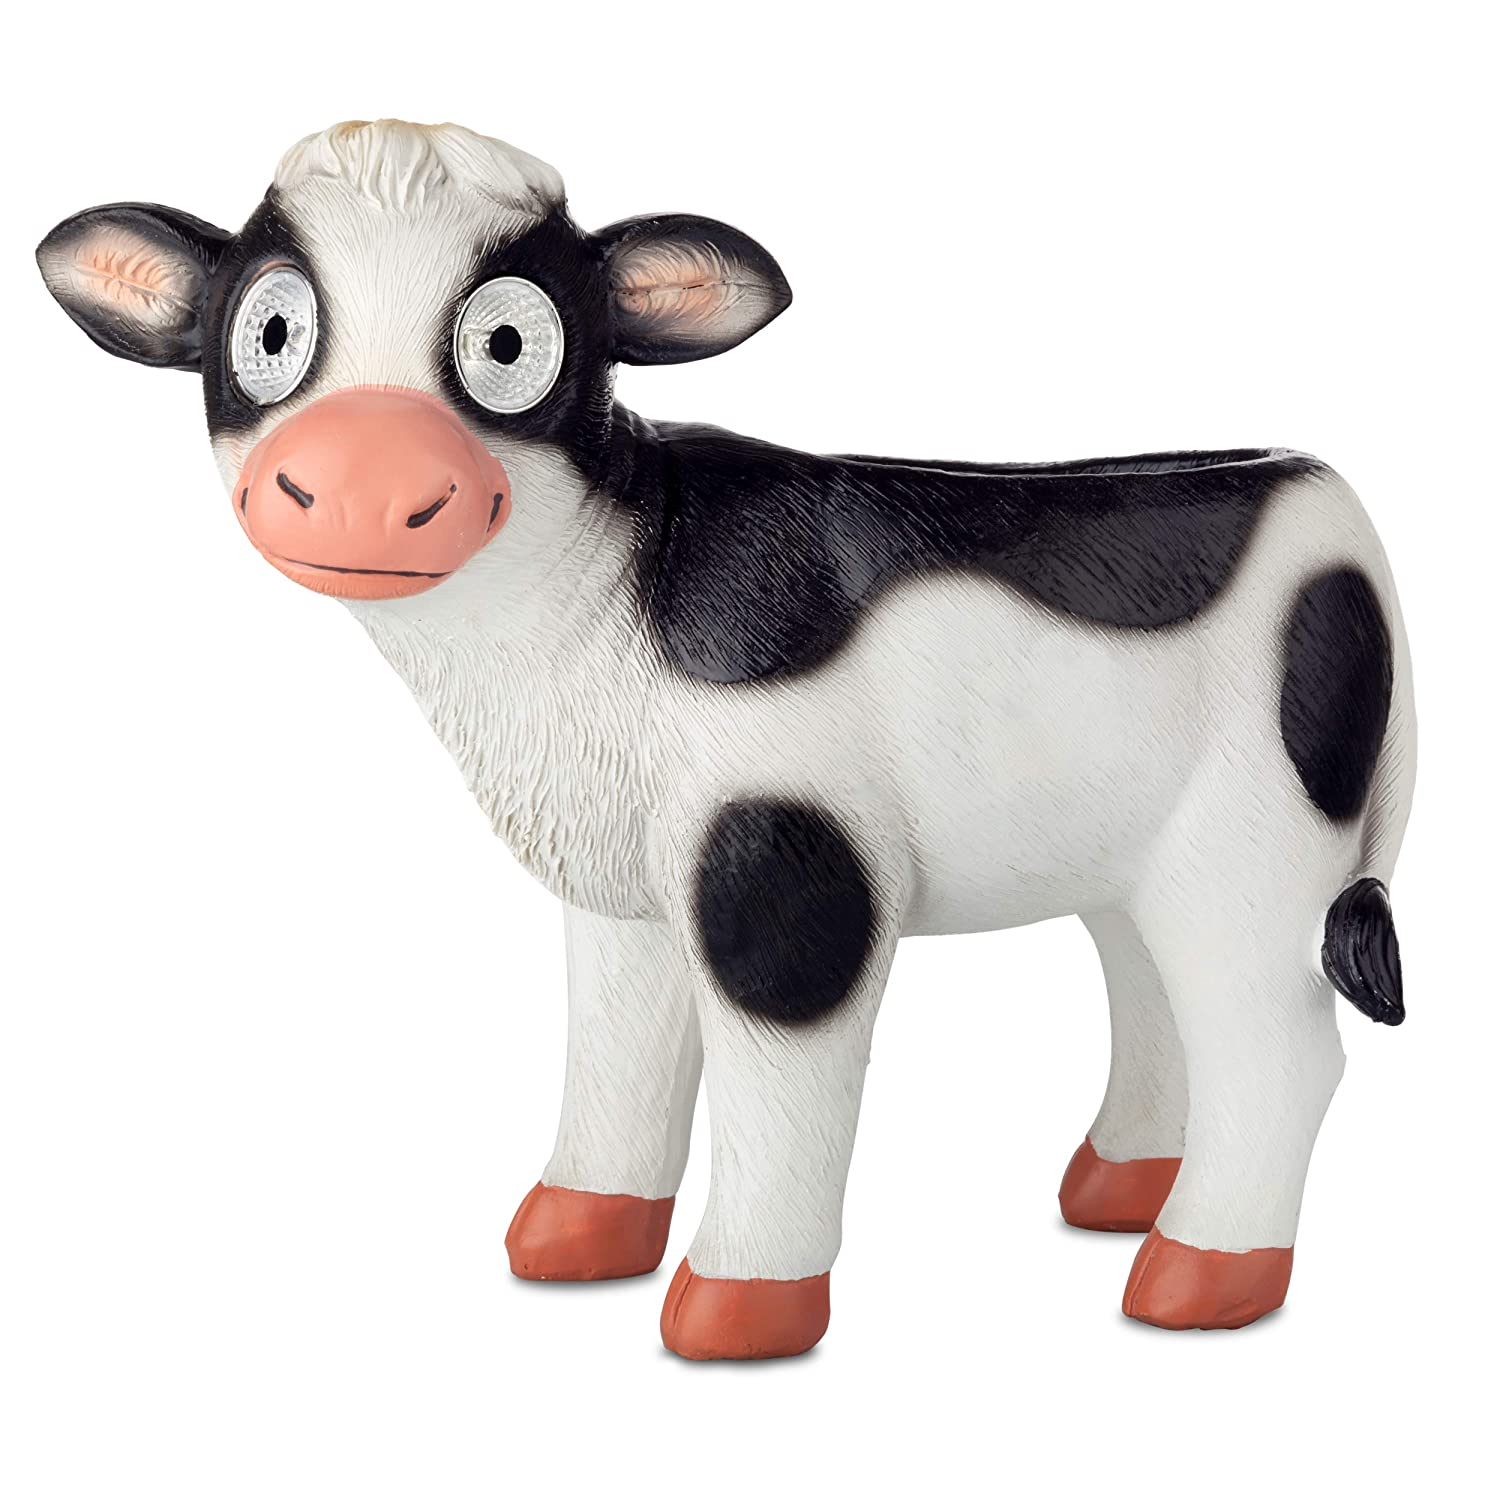 Cow Planter Animal Herb Pot   Succulent Holder   Outdoor Indoor Solar Patio Decor   Yard, Window, Kitchen or Deck   Patio Gift   Auto On/Off (White)